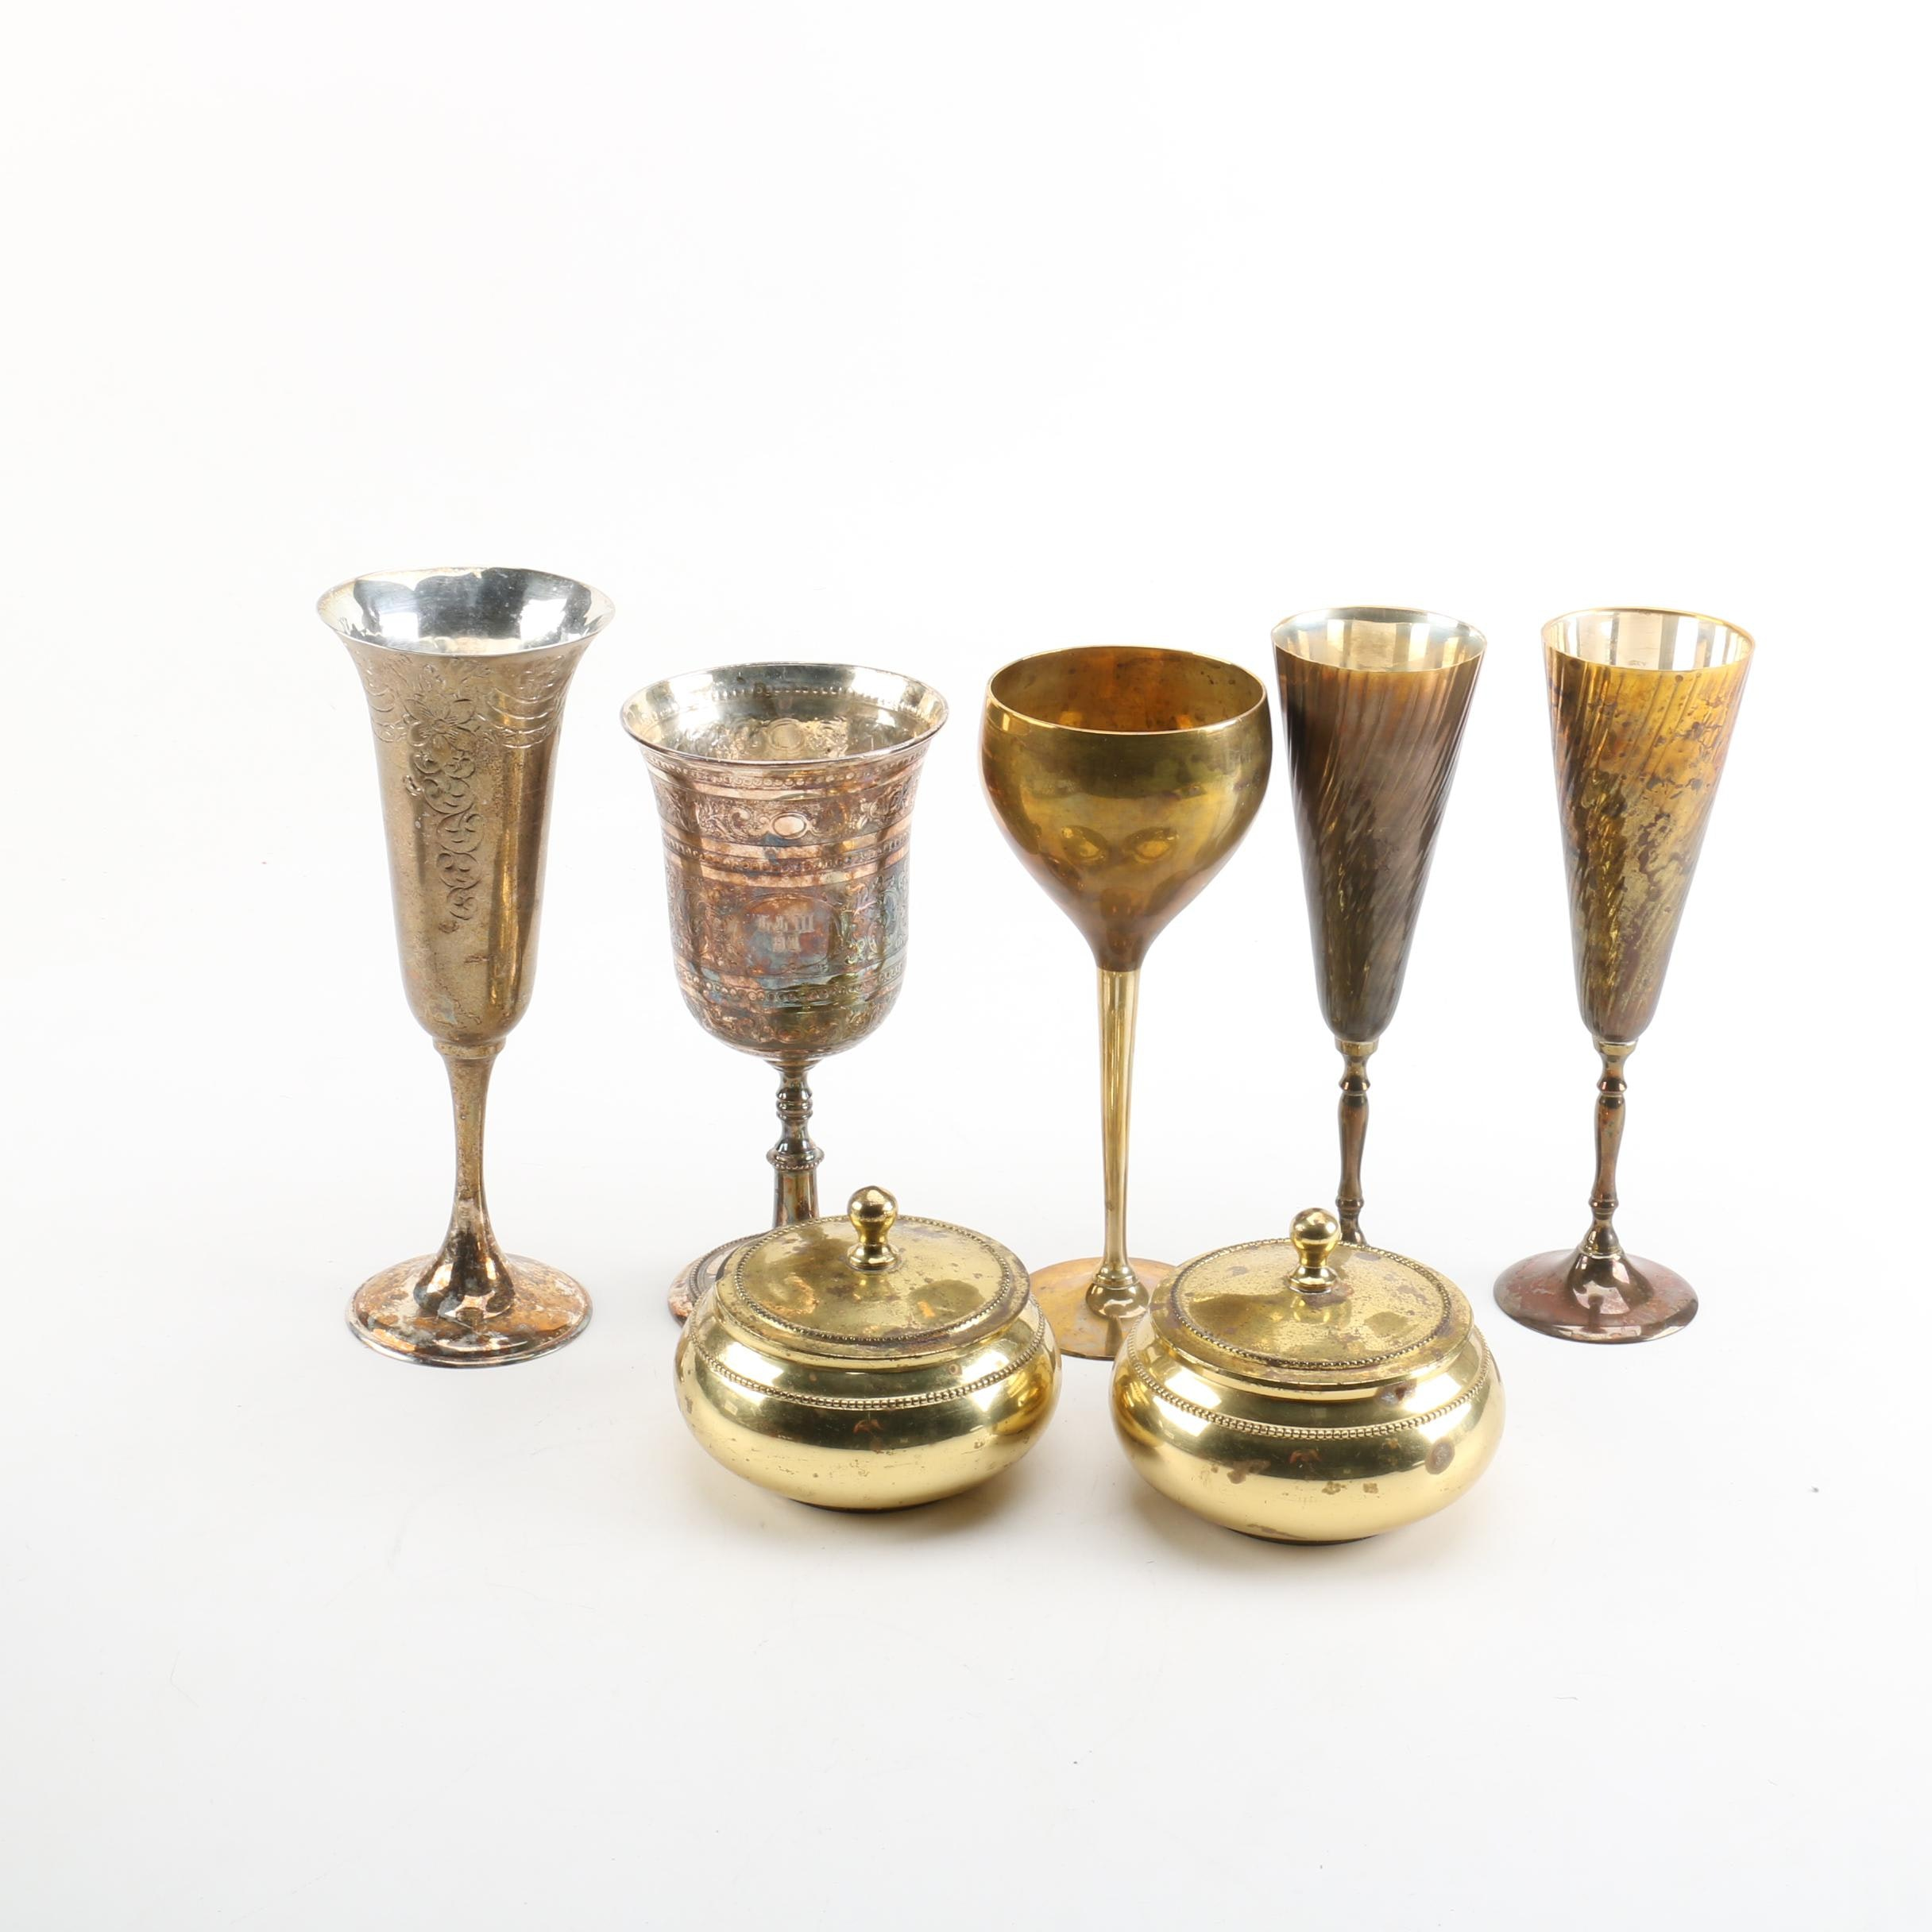 Silver Tone and Brass Goblets and Containers